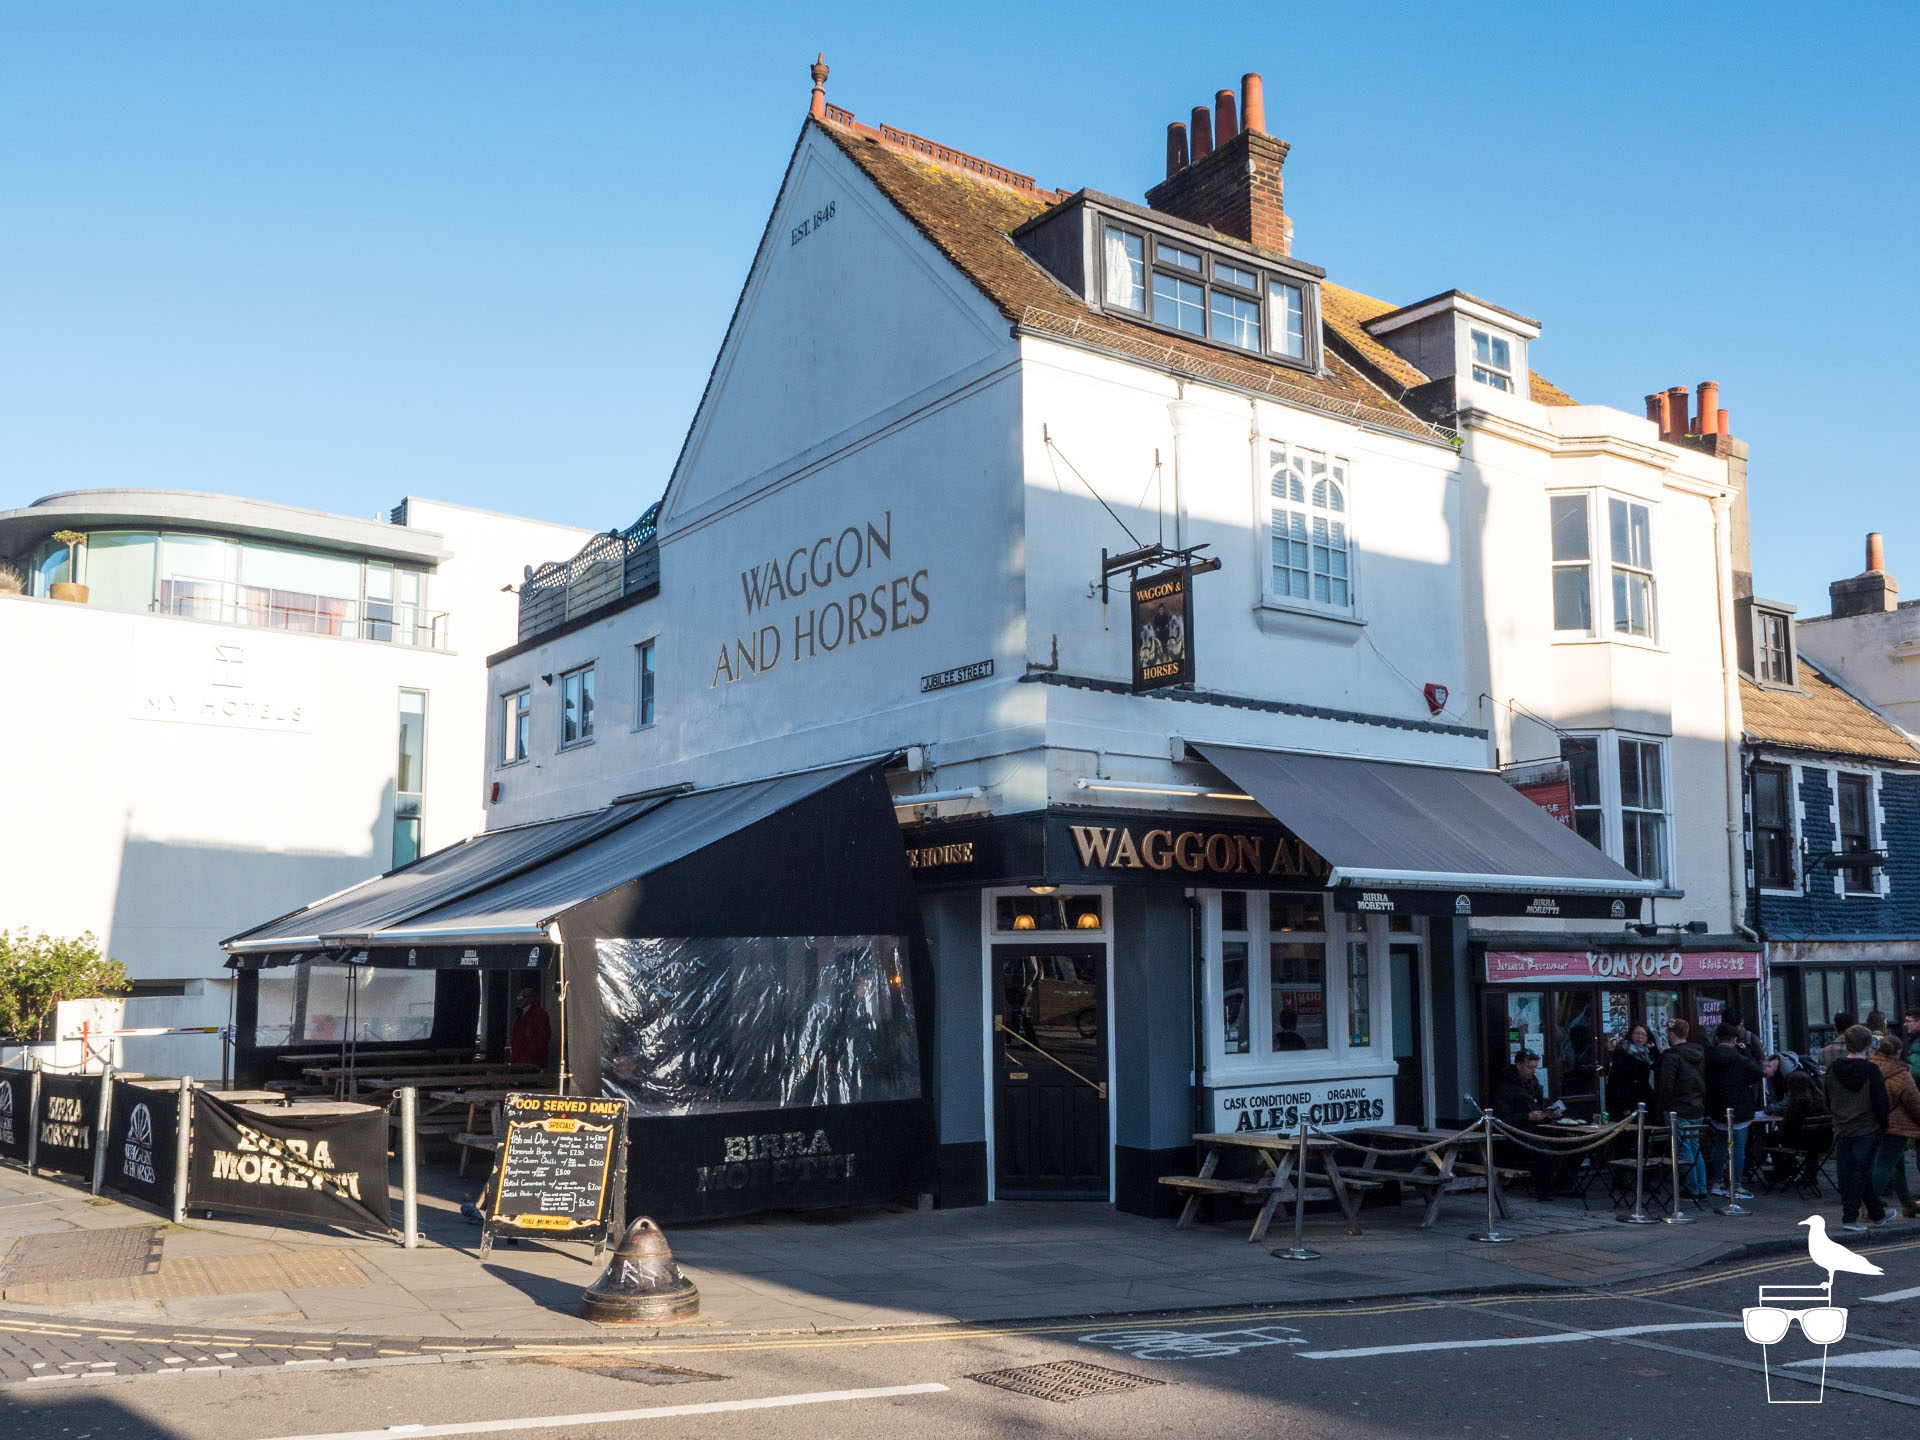 Waggon and Horses pub brighton outside